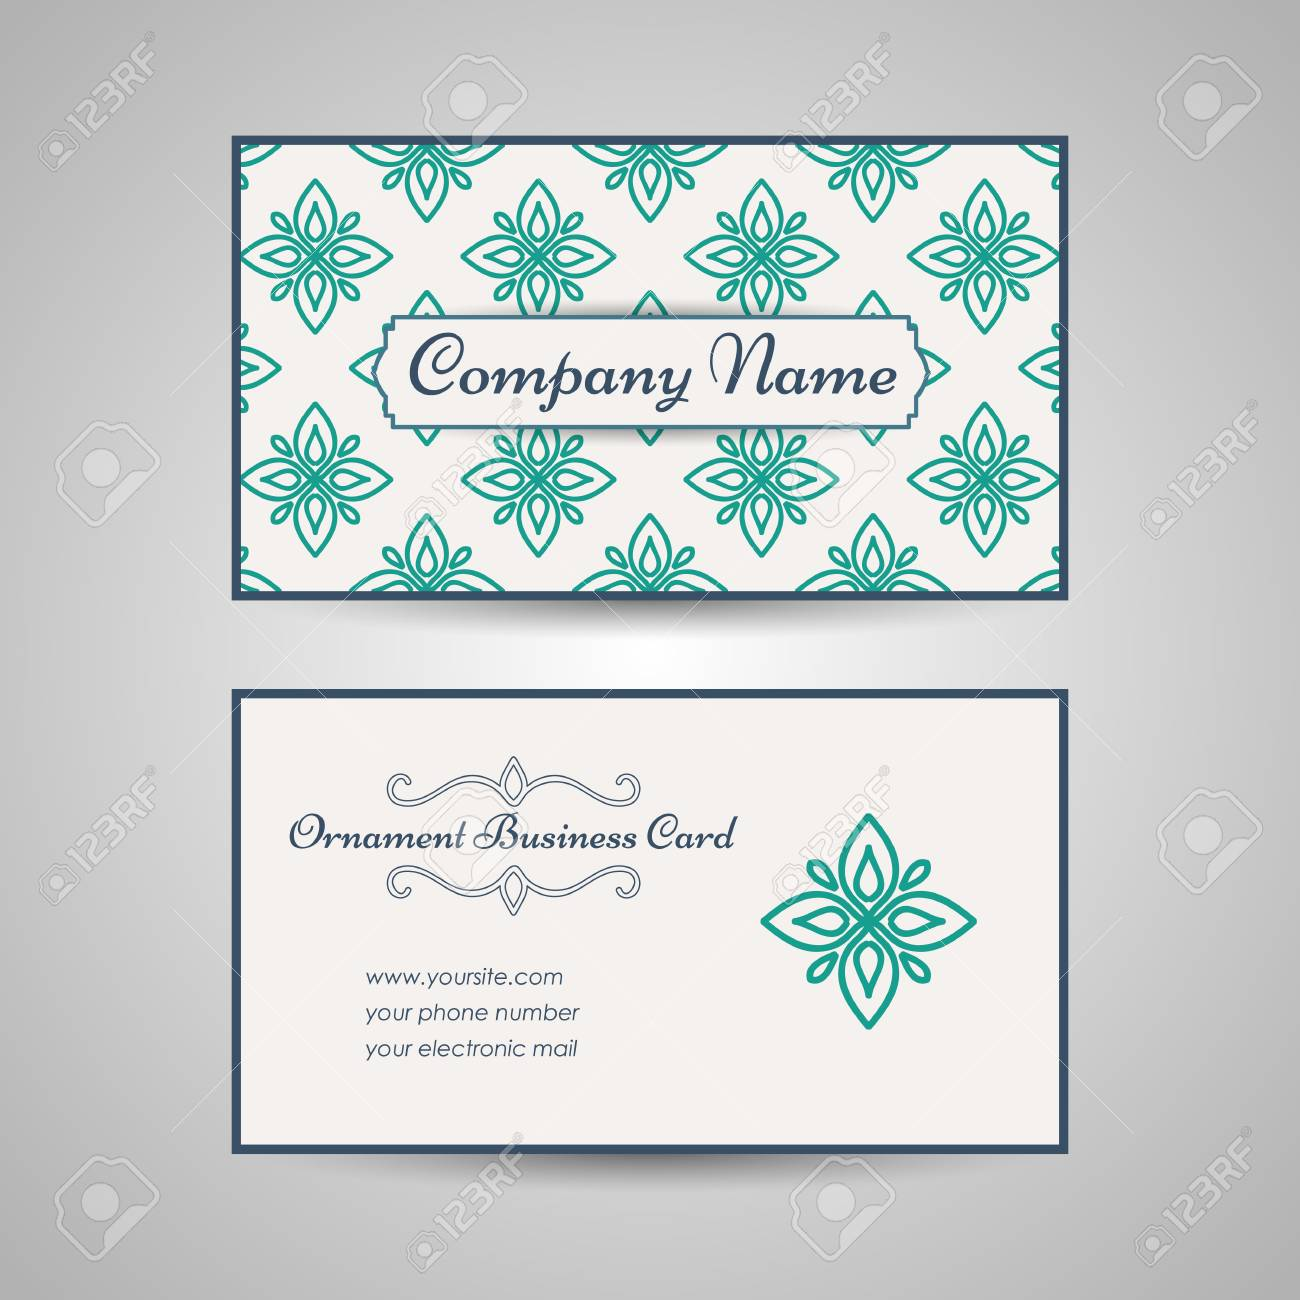 Vintage Arabic Style Business Card Template Vector Illustration